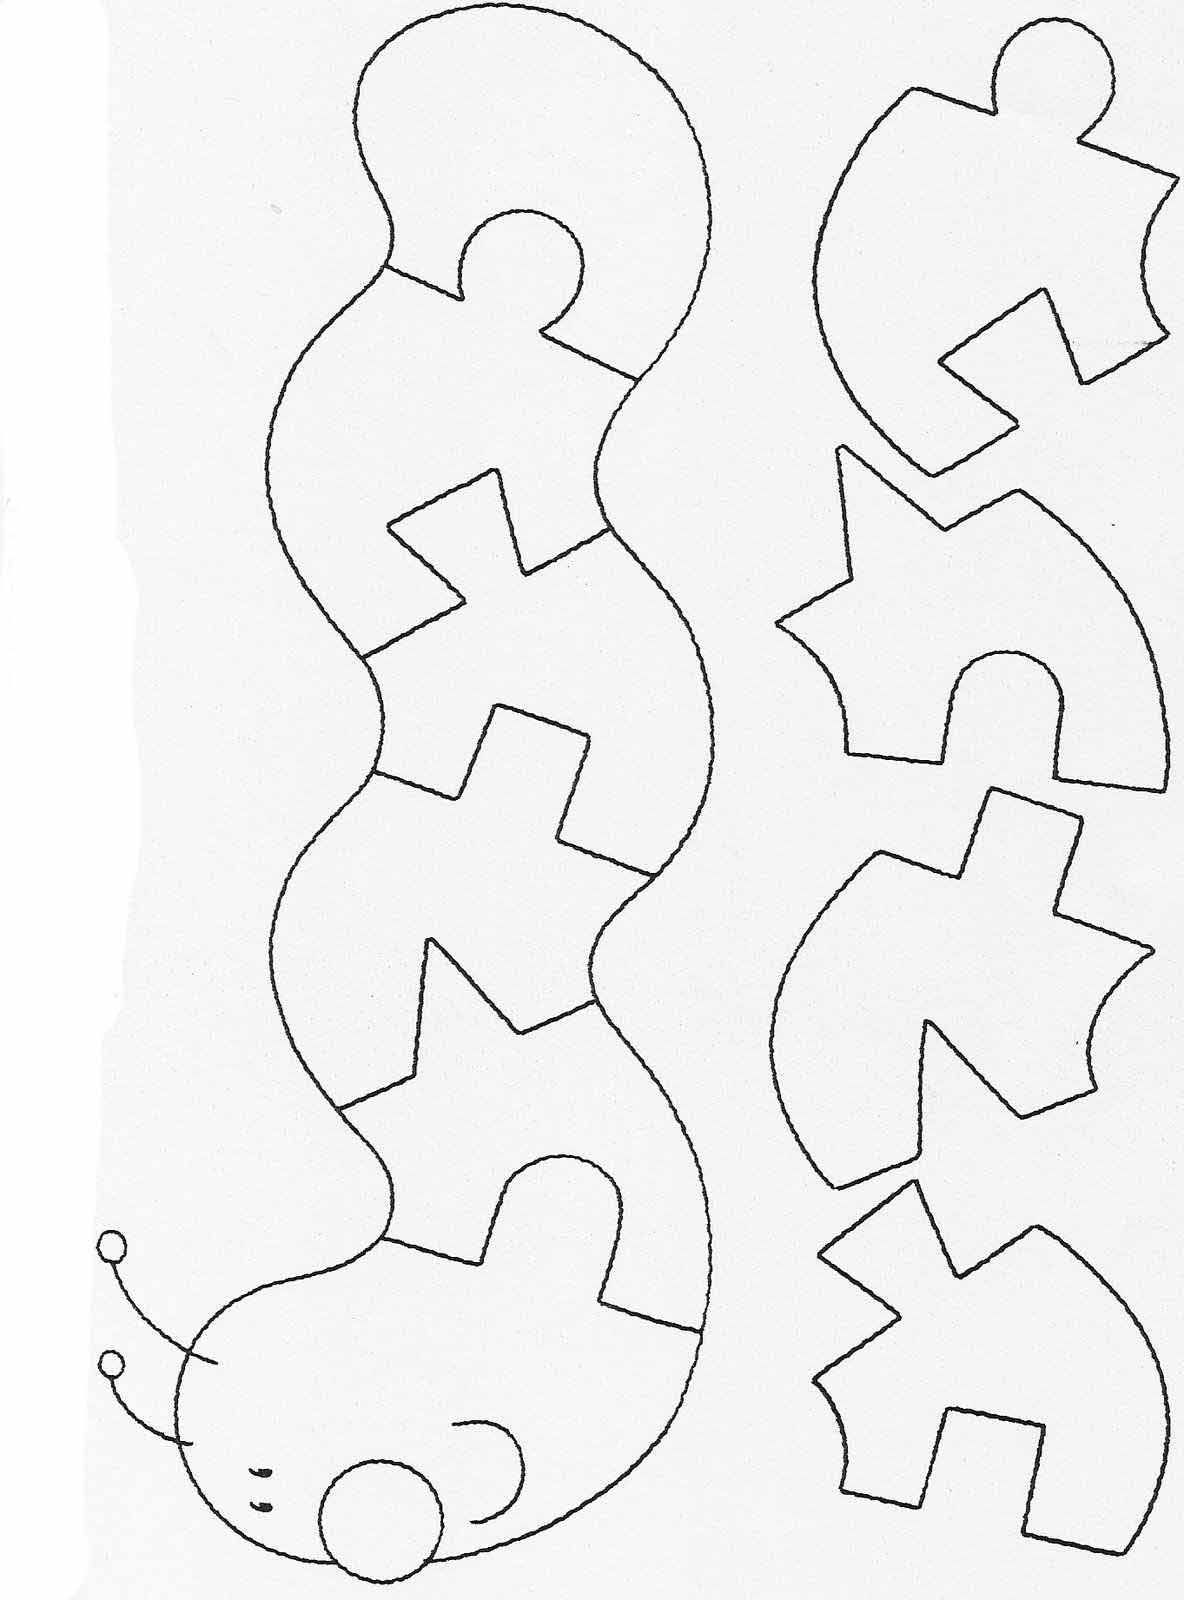 Elementary school worksheets complete and coloring 23 activities elementary school worksheets complete and coloring 23 robcynllc Image collections